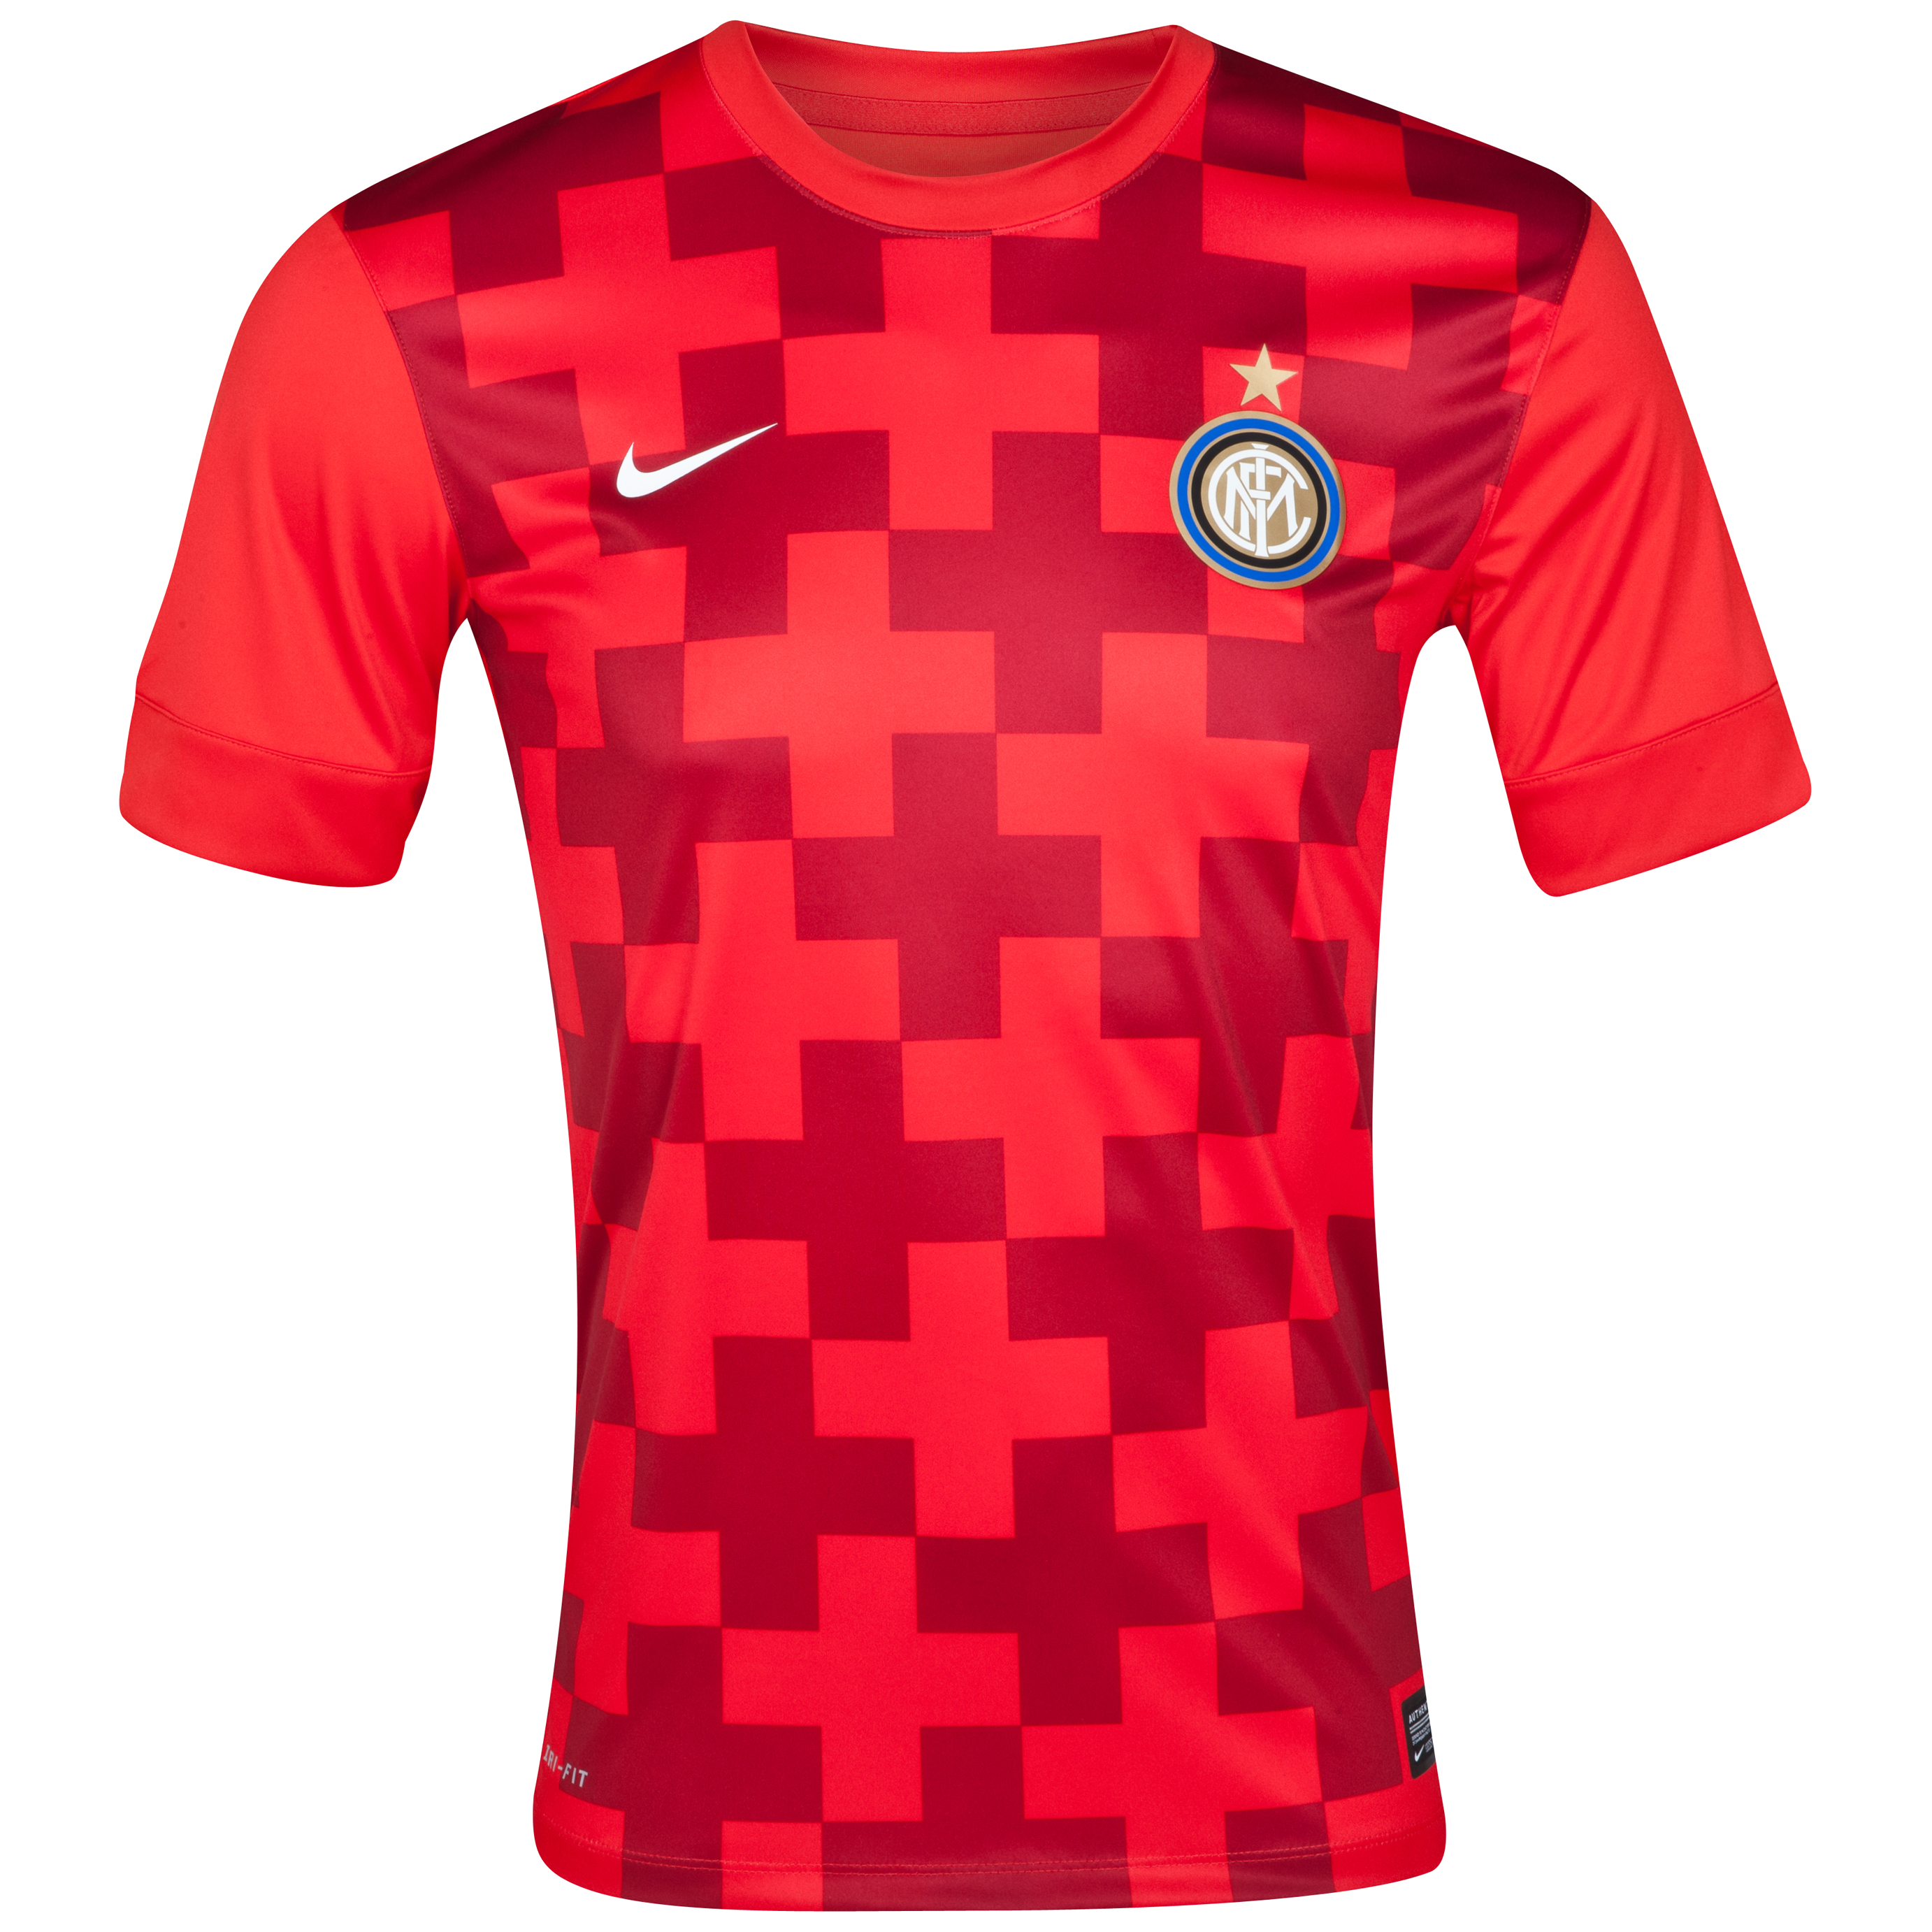 Inter Milan Prematch Top 1 - Challenge Red/White